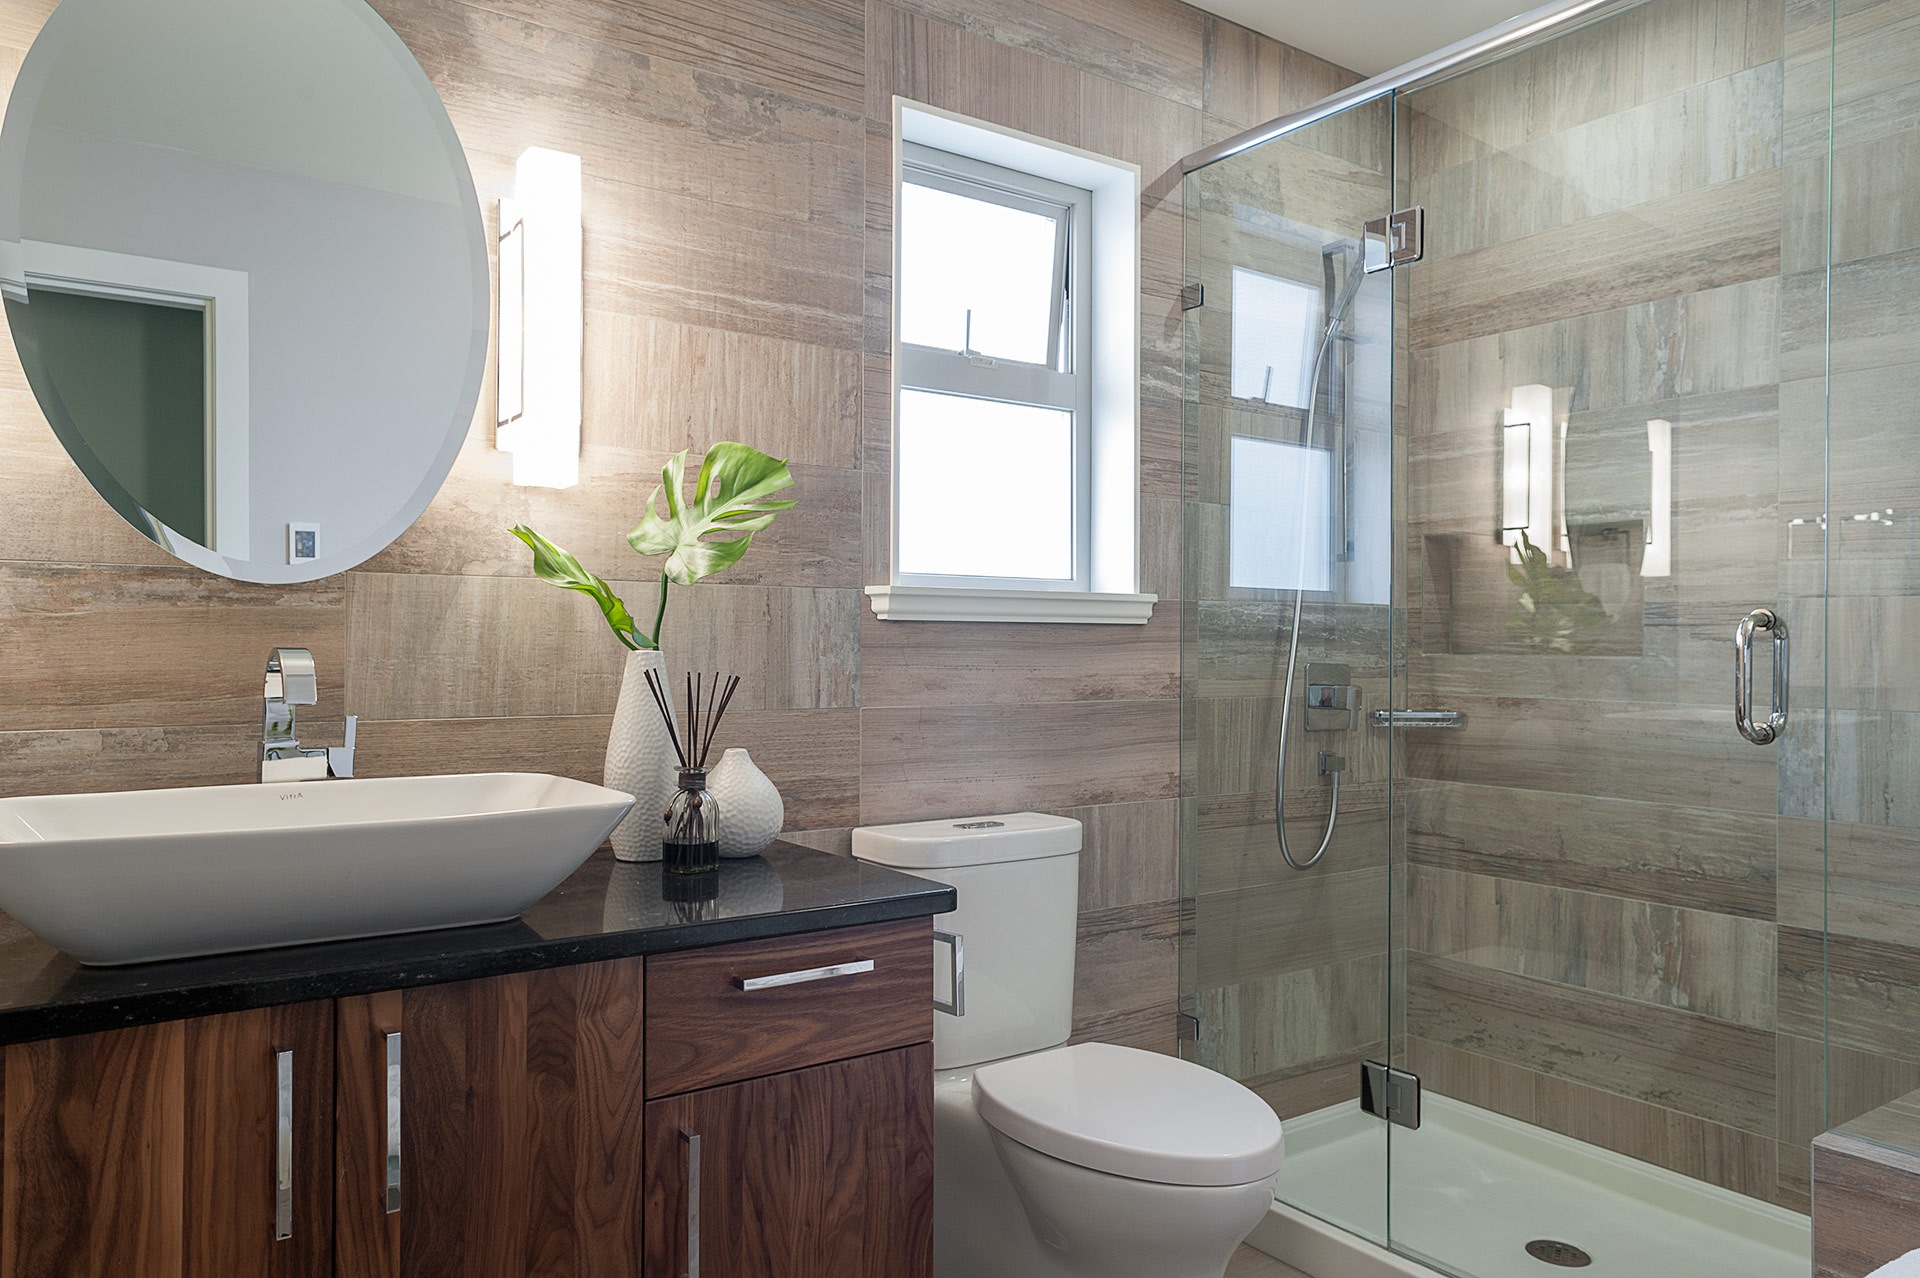 Deelat blog tips for bathroom renovation ideas - Pictures of remodeled small bathrooms ...